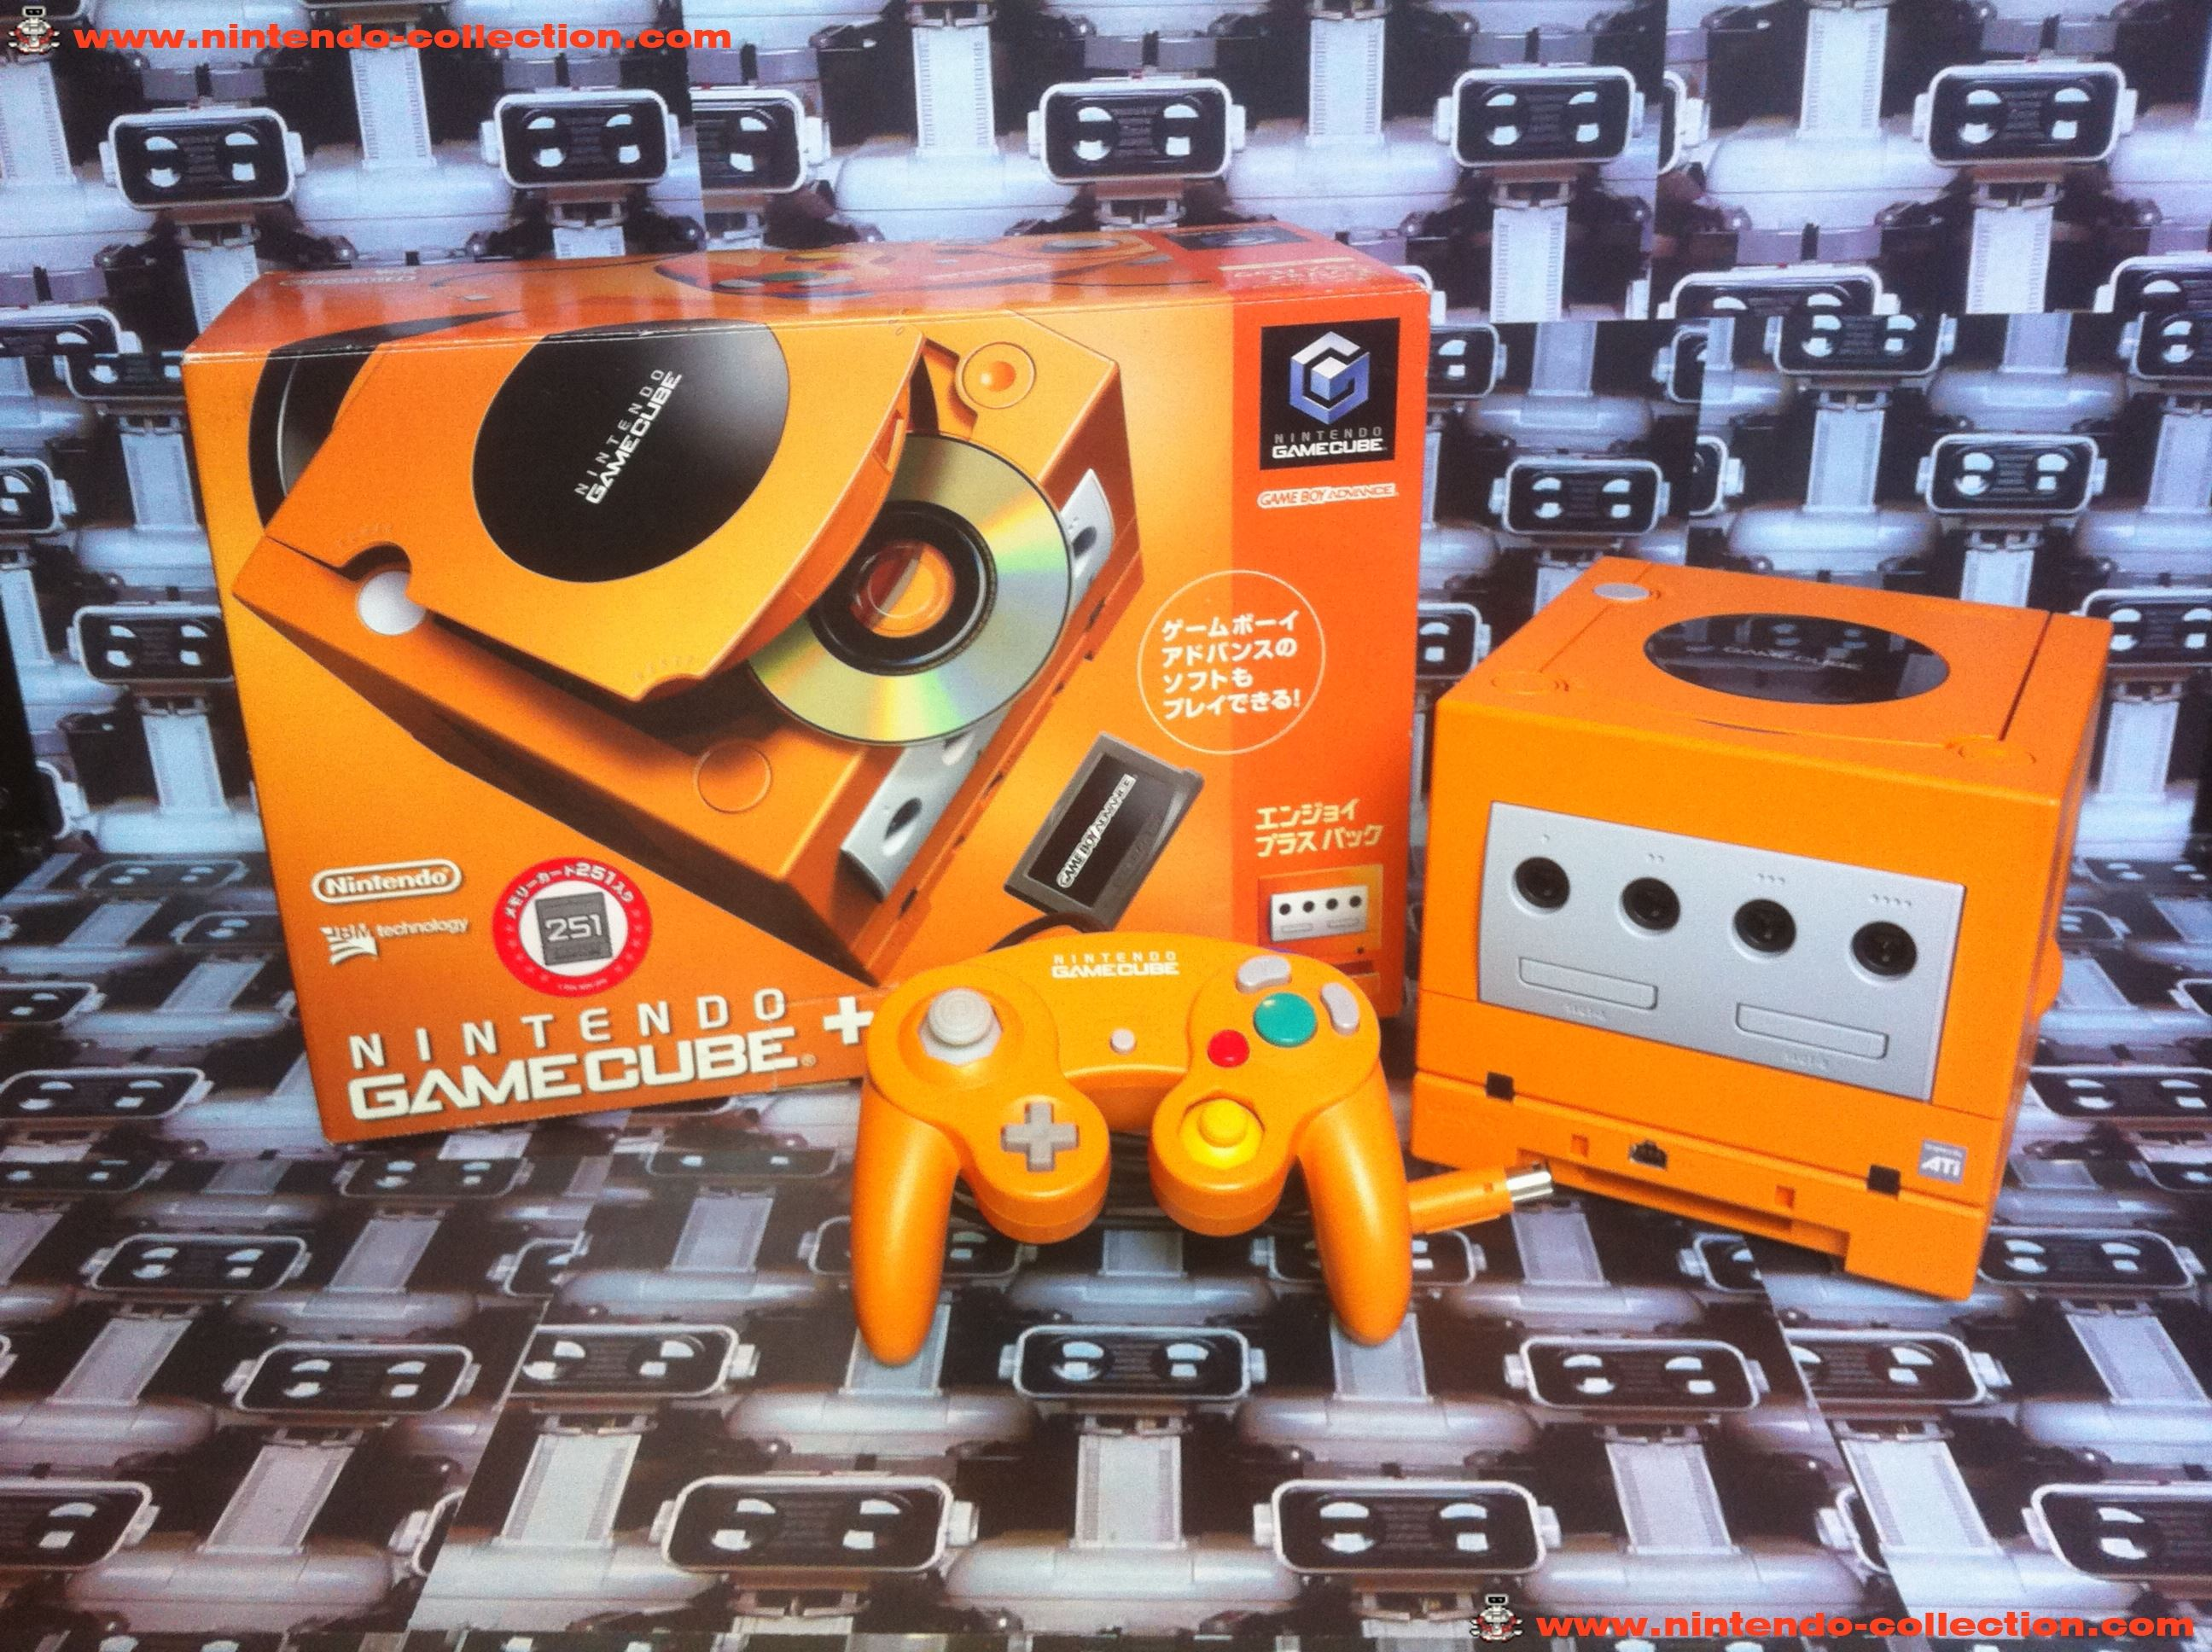 www.nintendo-collection.com - Gamecube  Spice Orange Gameboy Player Edition Japanese Japan Japonaise